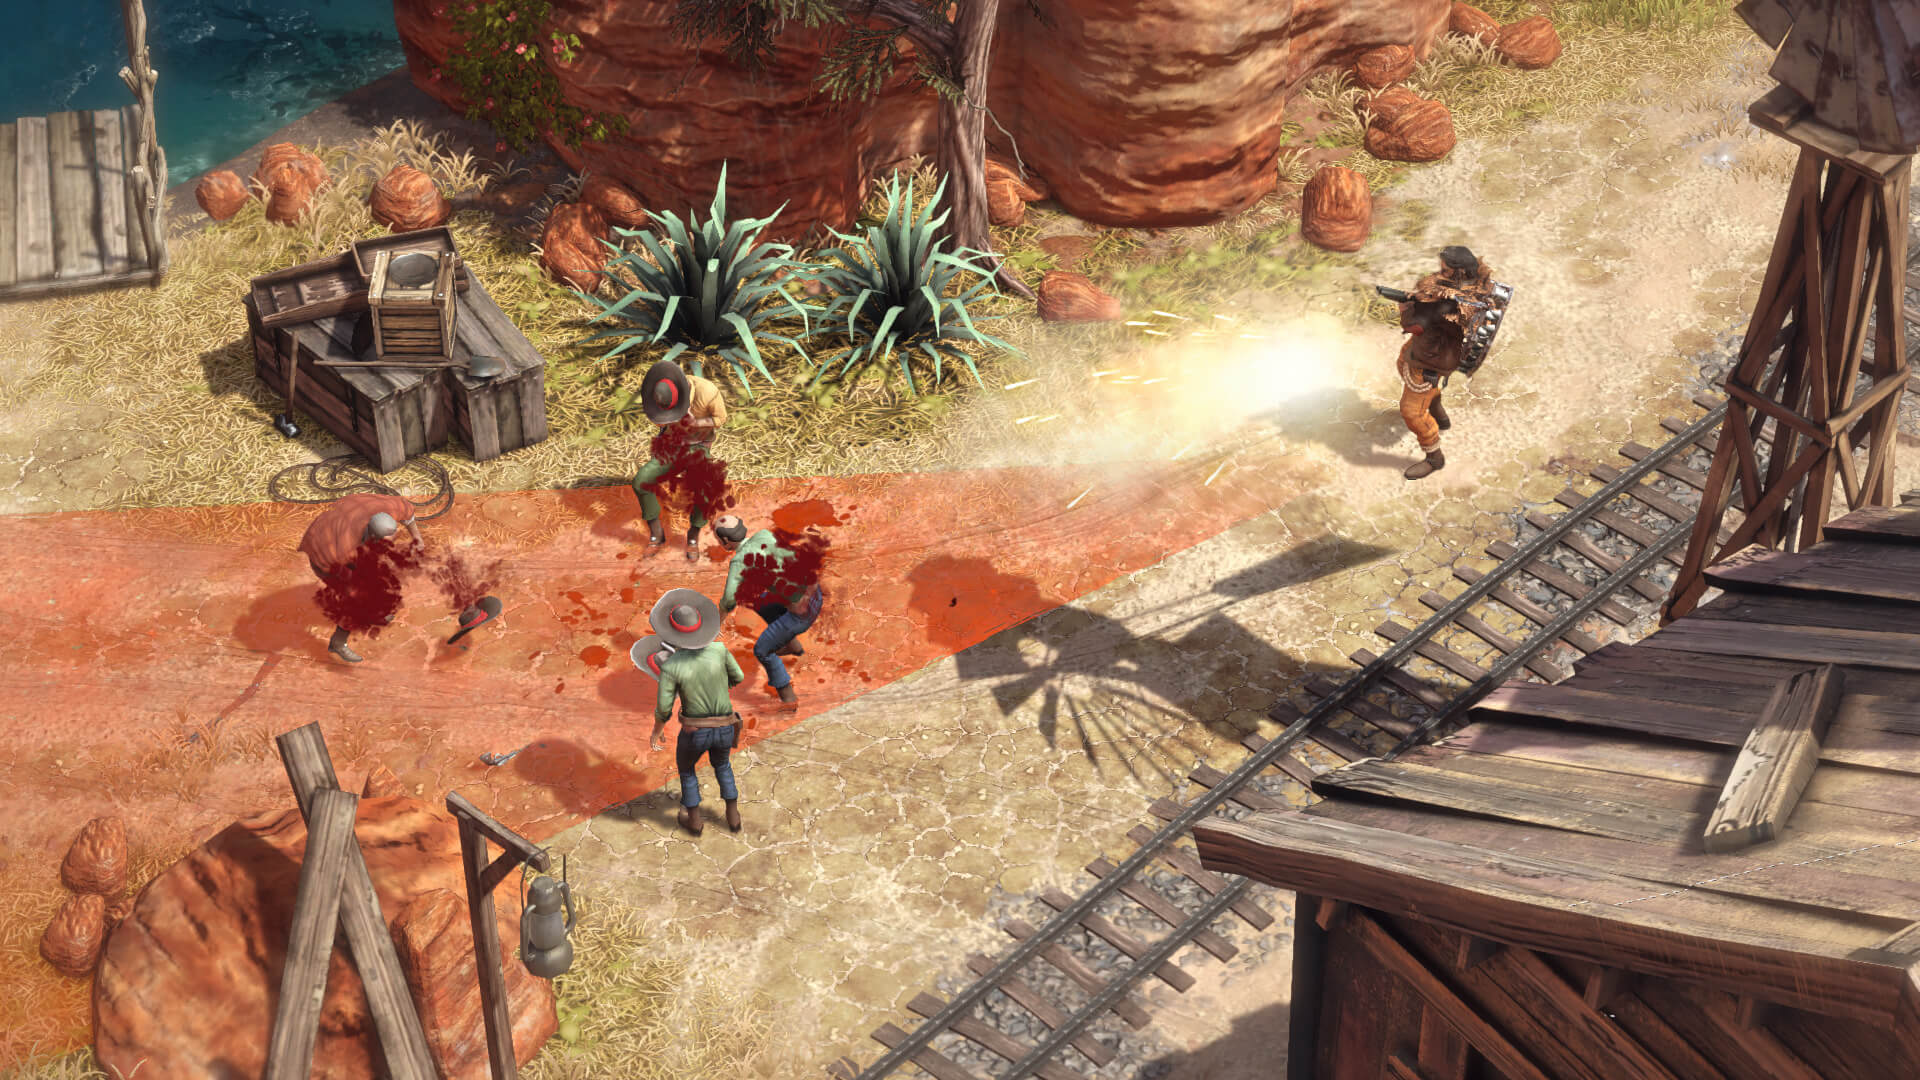 Desperados Iii Gets Some Free Content Today Godisageek Com